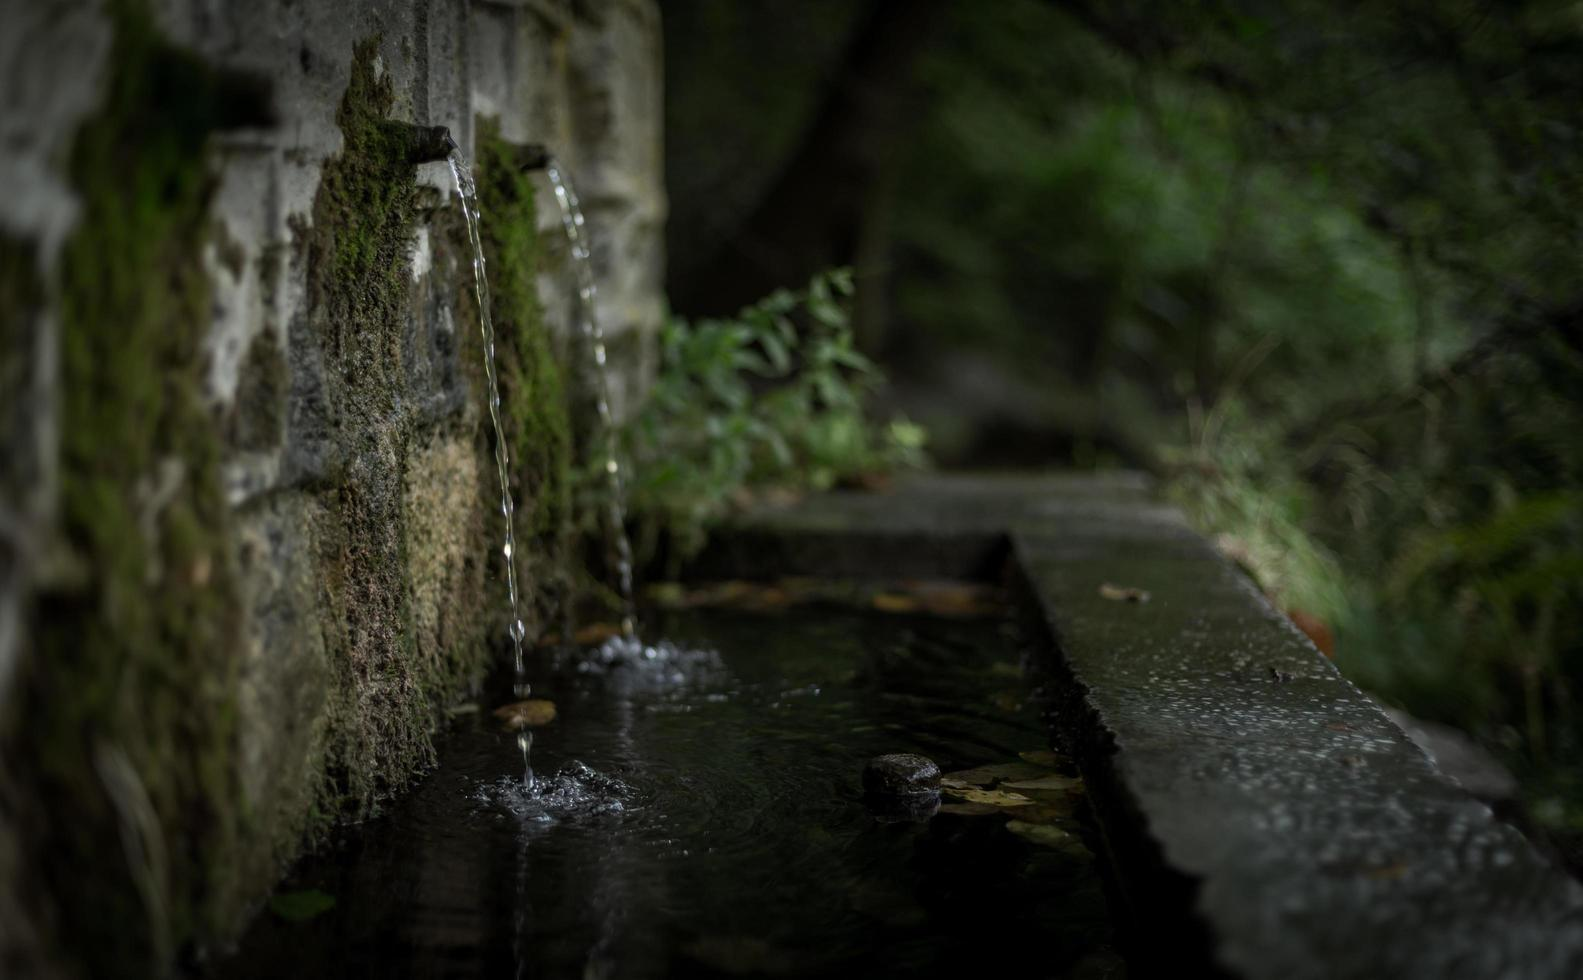 Water drops on concrete wall photo